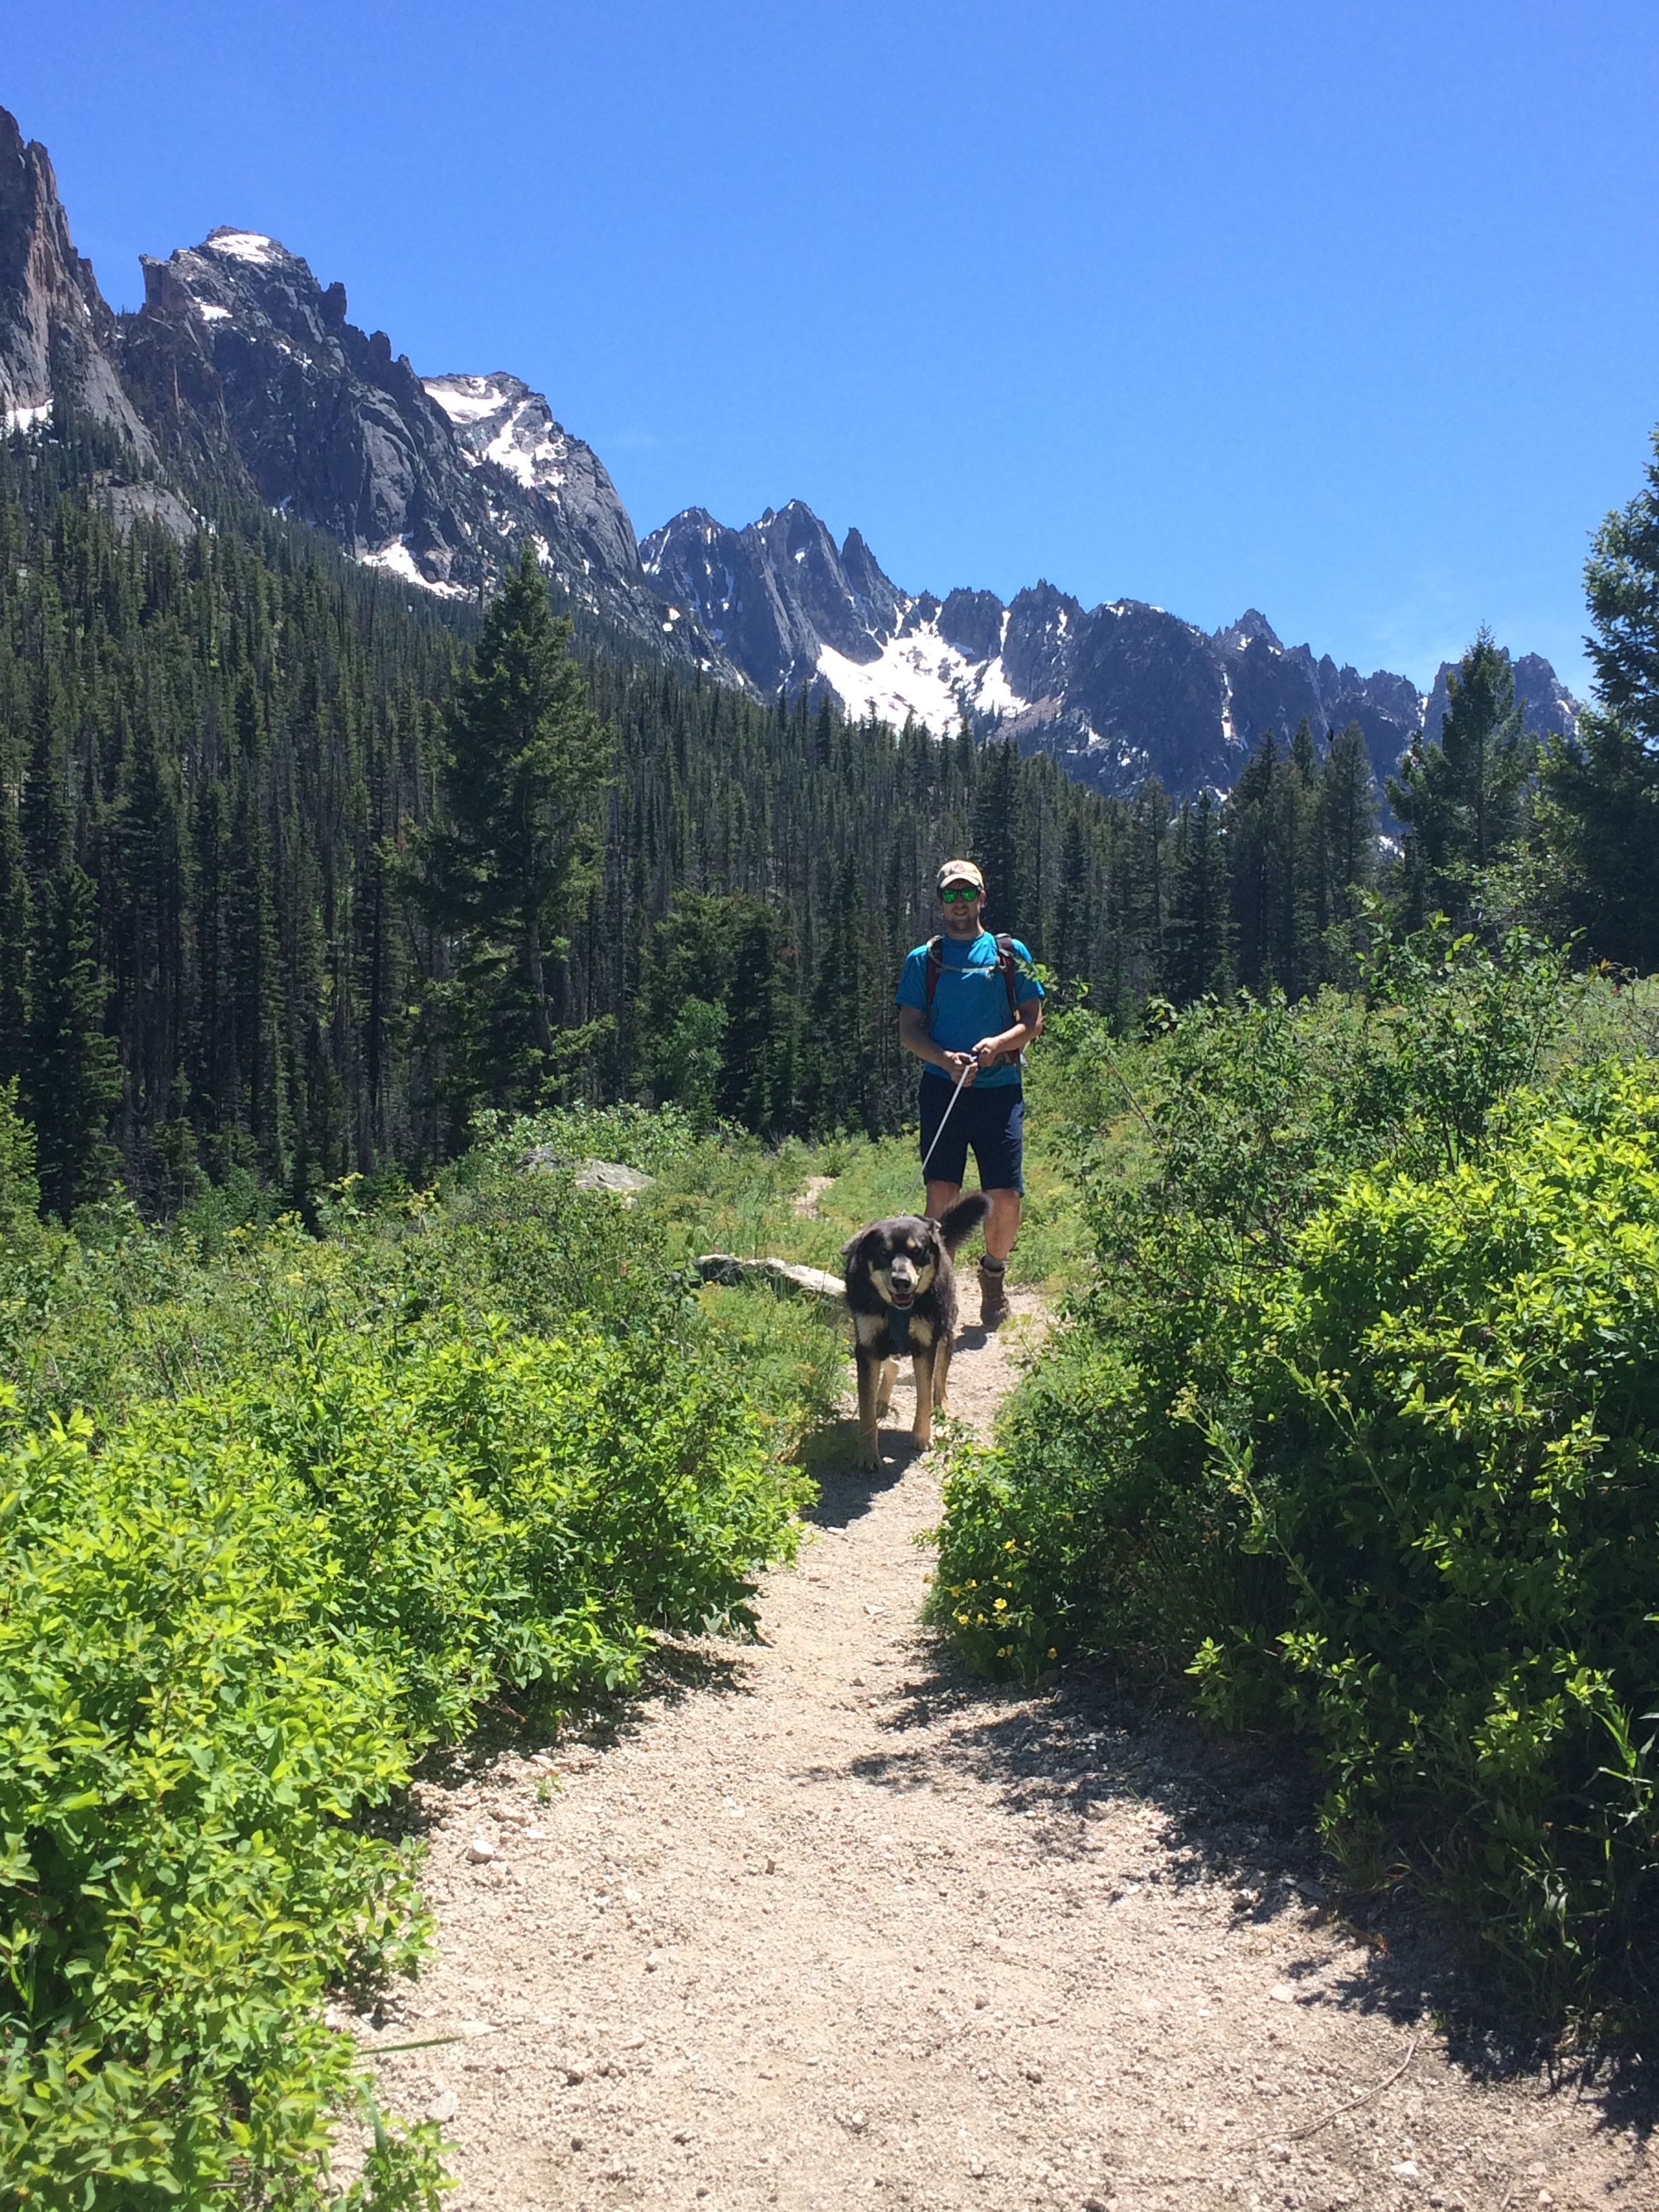 The Sawtooths are absolutely stunning and dog friendly